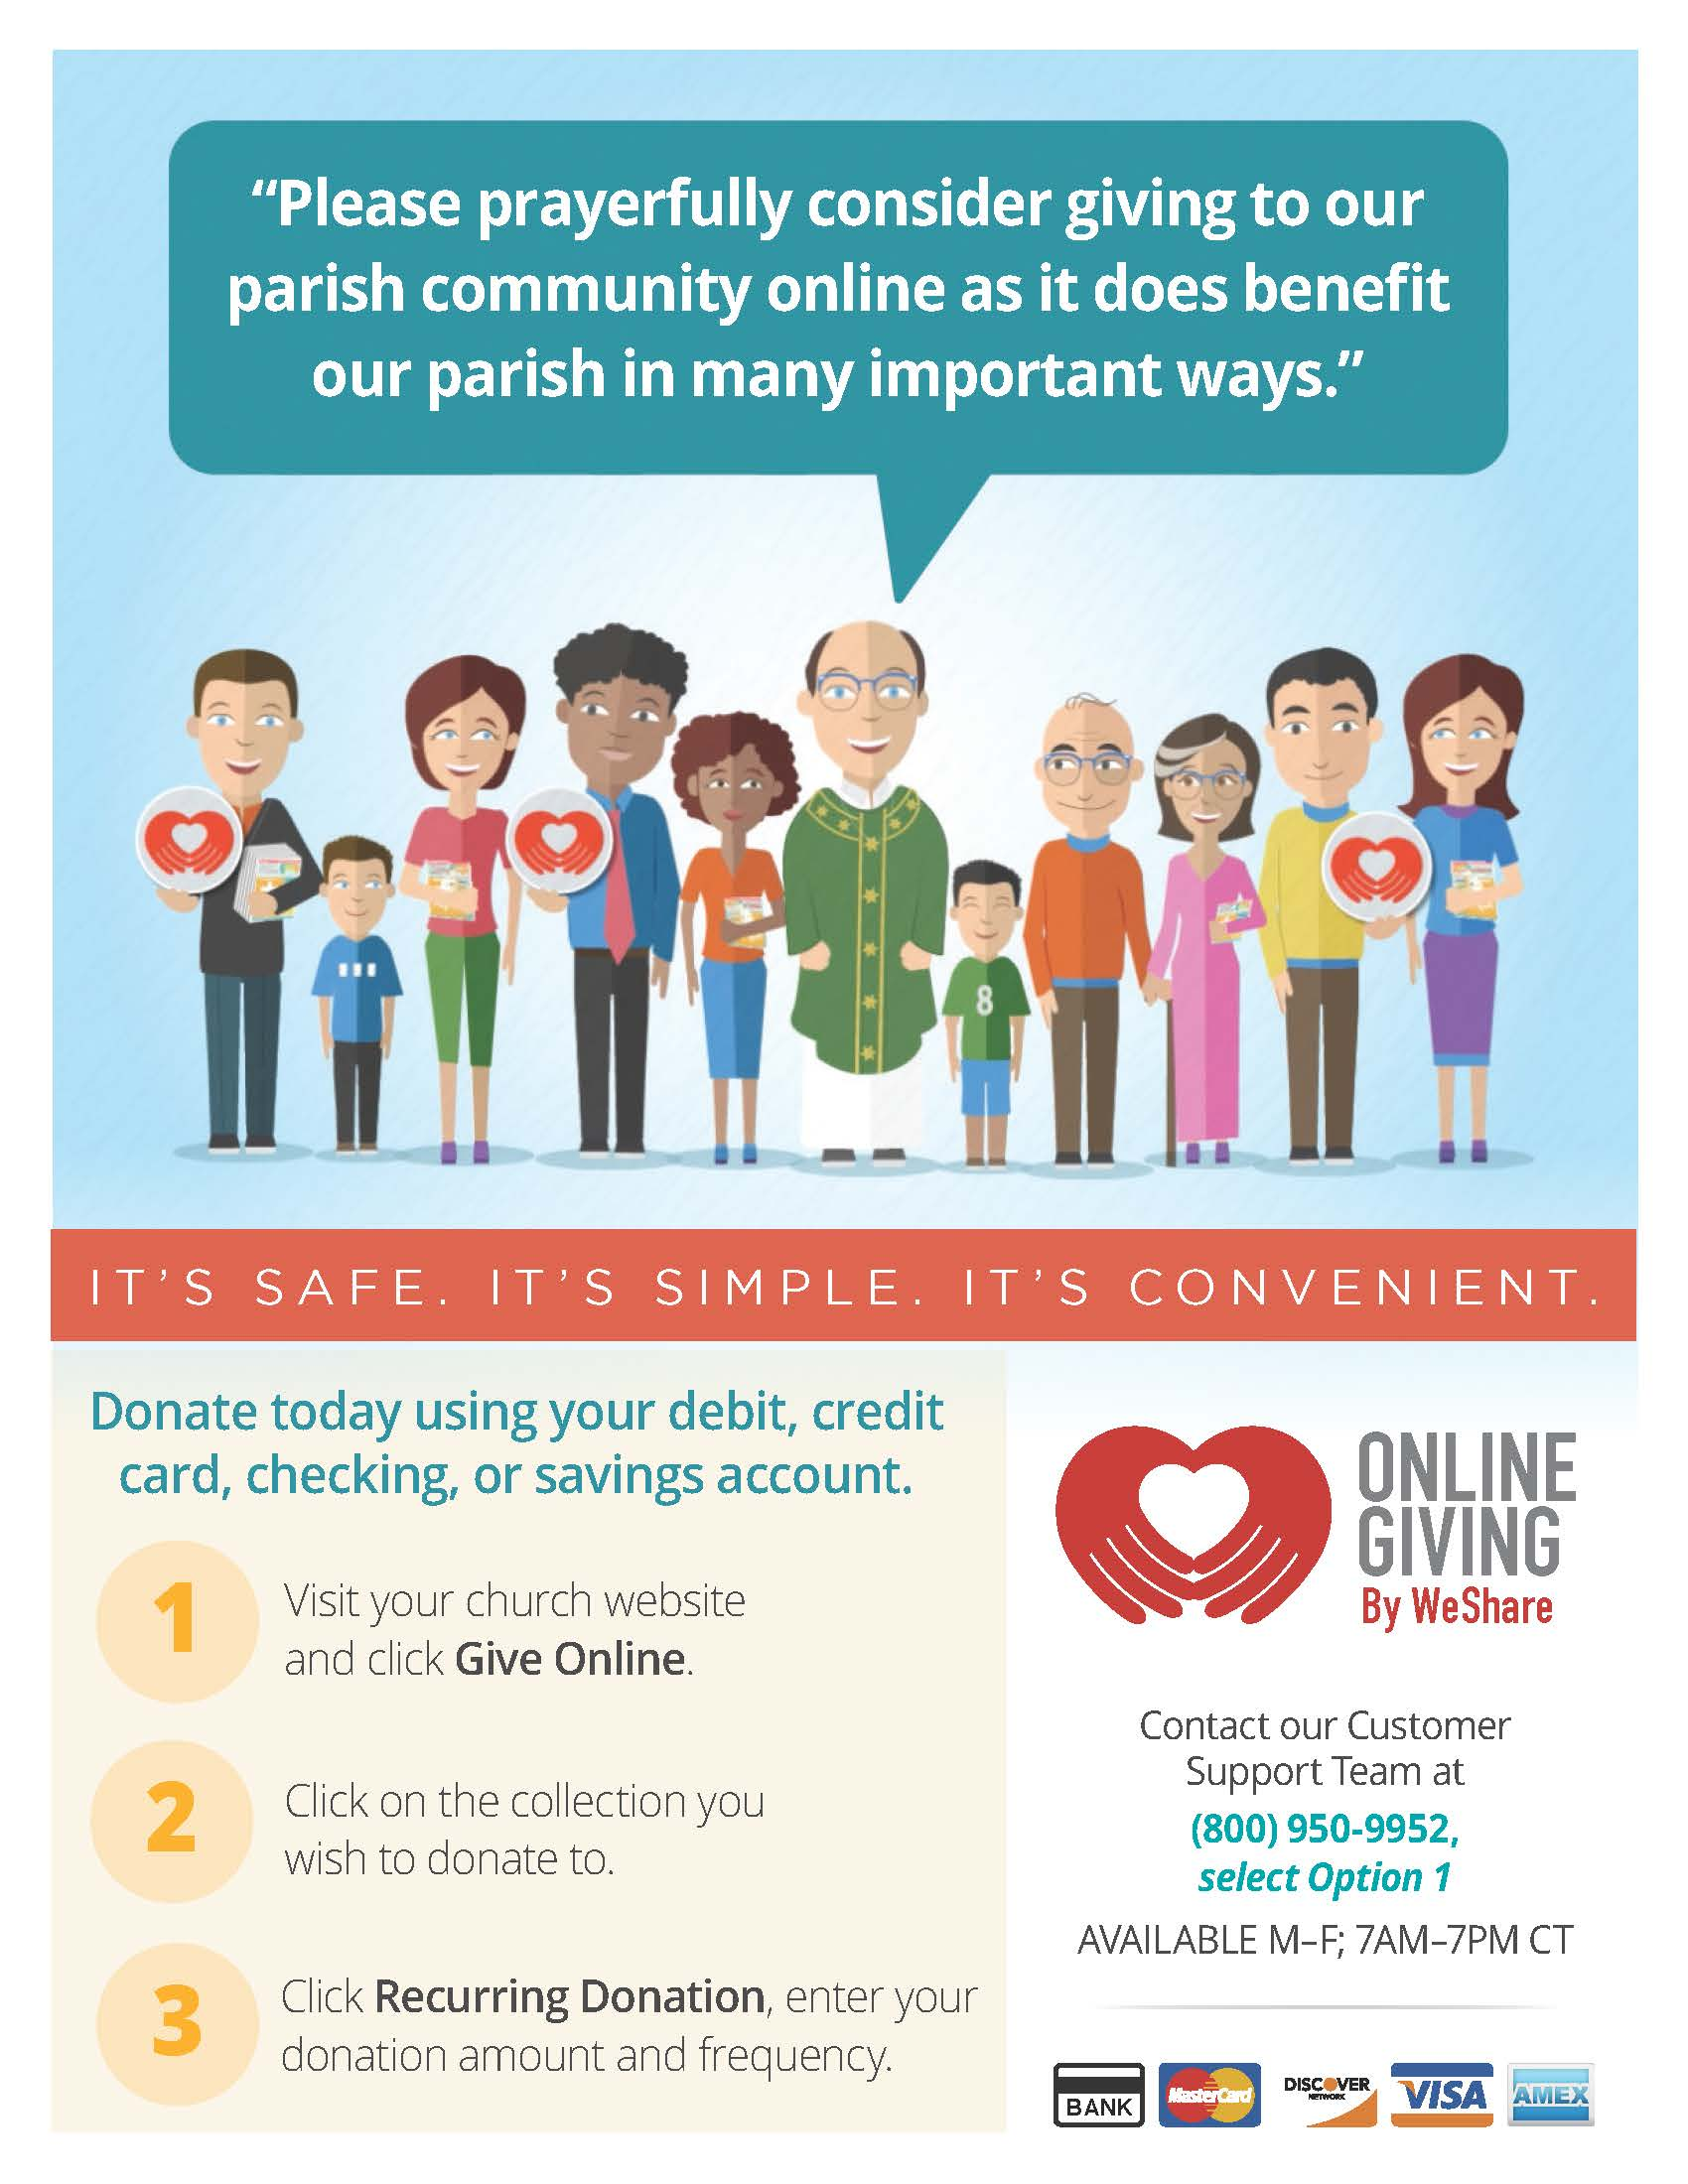 Parish Online Giving by WeShare